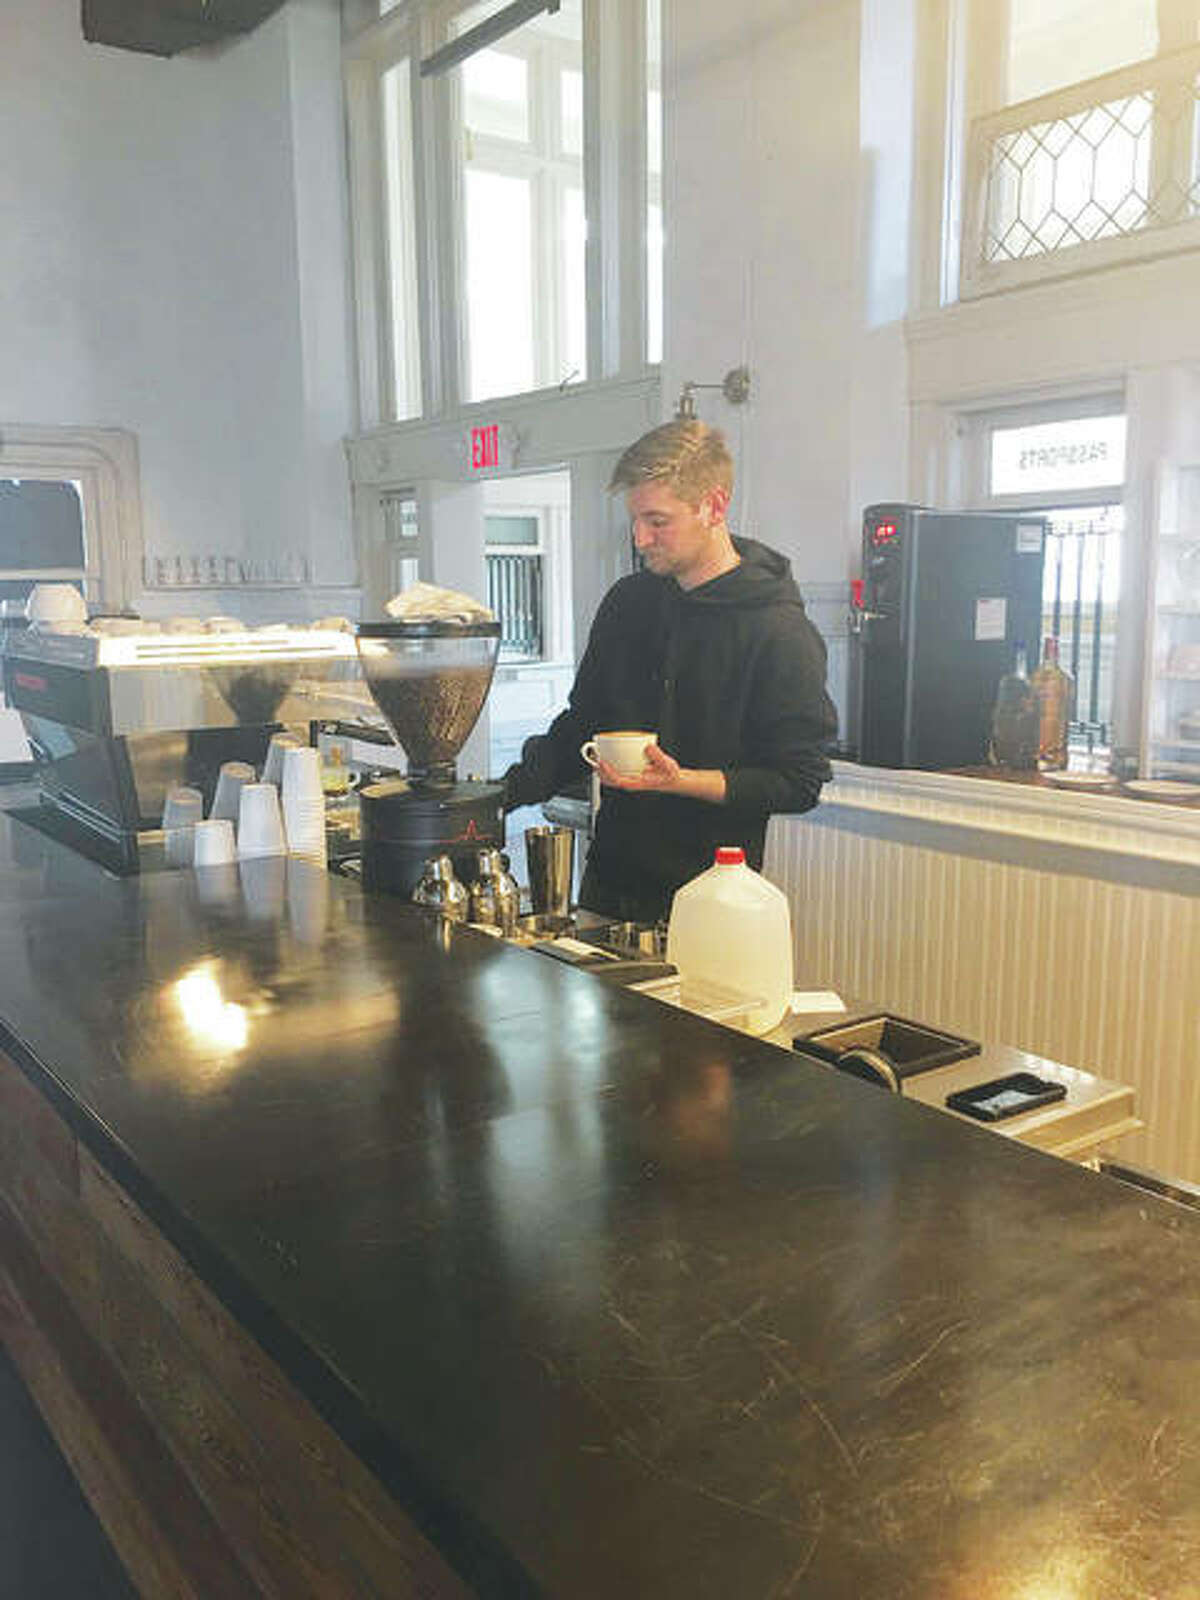 Barista David McCann prepares a latte, topping it with a perfectly-executed design. McCann moved to Alton five months ago, along with his sister, Justine McCann, as part of Post Commons' team of like-minded individuals who share owner Hugh Halter's vision for the private-public entity.